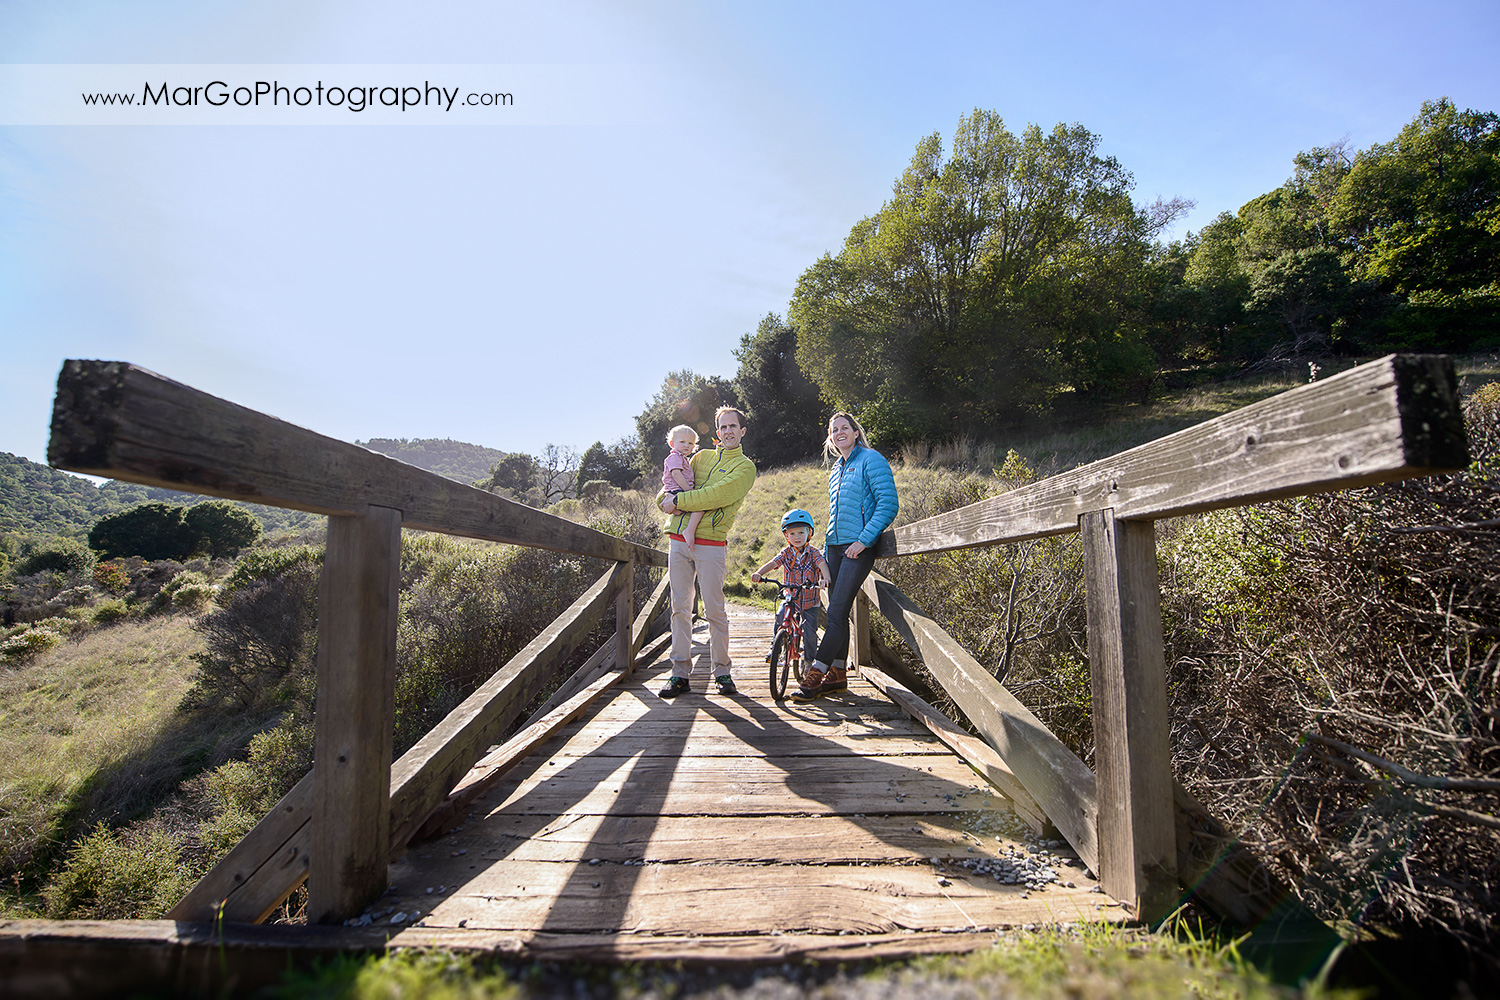 wide angle portrait of family of four on the wooden bridge at San Raeael China Camp SP